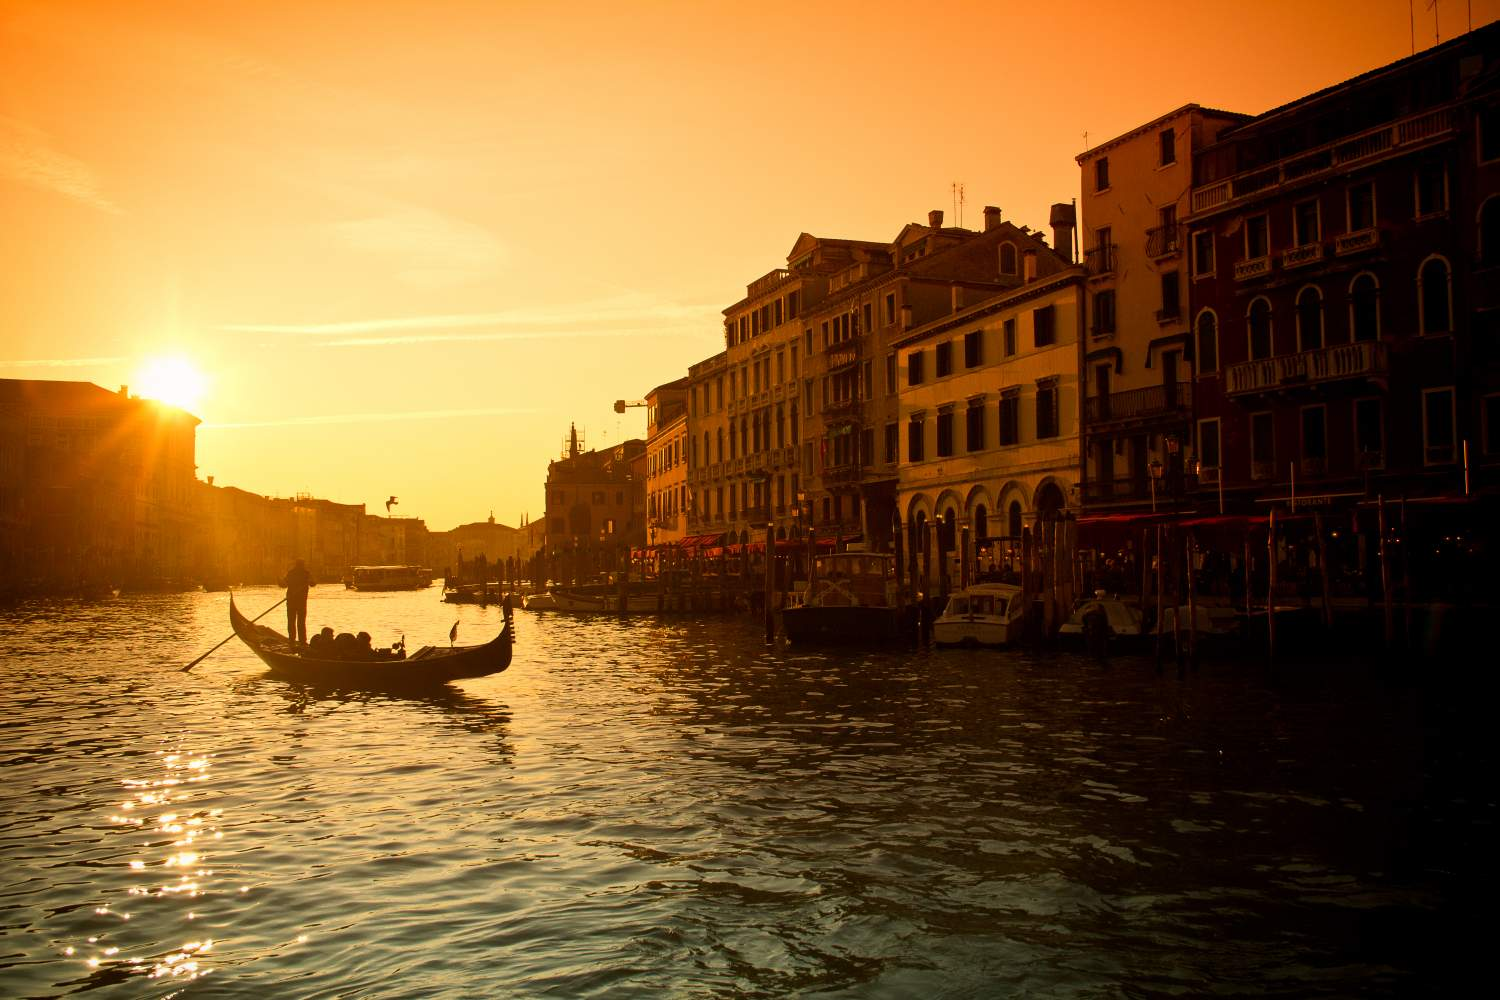 Sunset on Venice, Italy